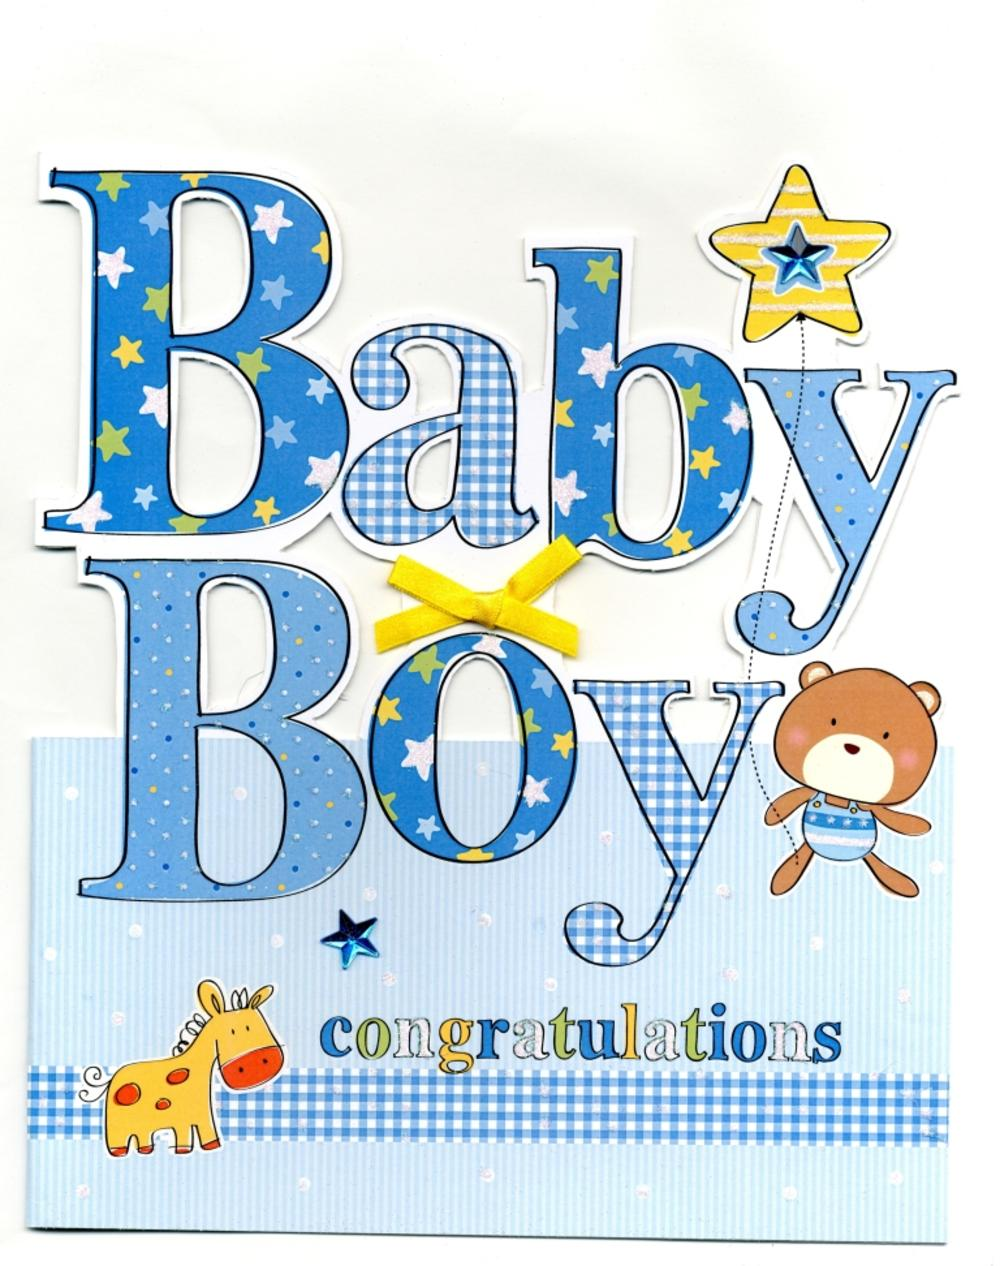 Lovely Large New Baby Boy Congratulations Greeting Card Large New Baby Boy Congratulations Greeting Card Cards Love Kates Congrats On Baby Sayings Congrats On Baby Meme baby shower Congrats On Baby